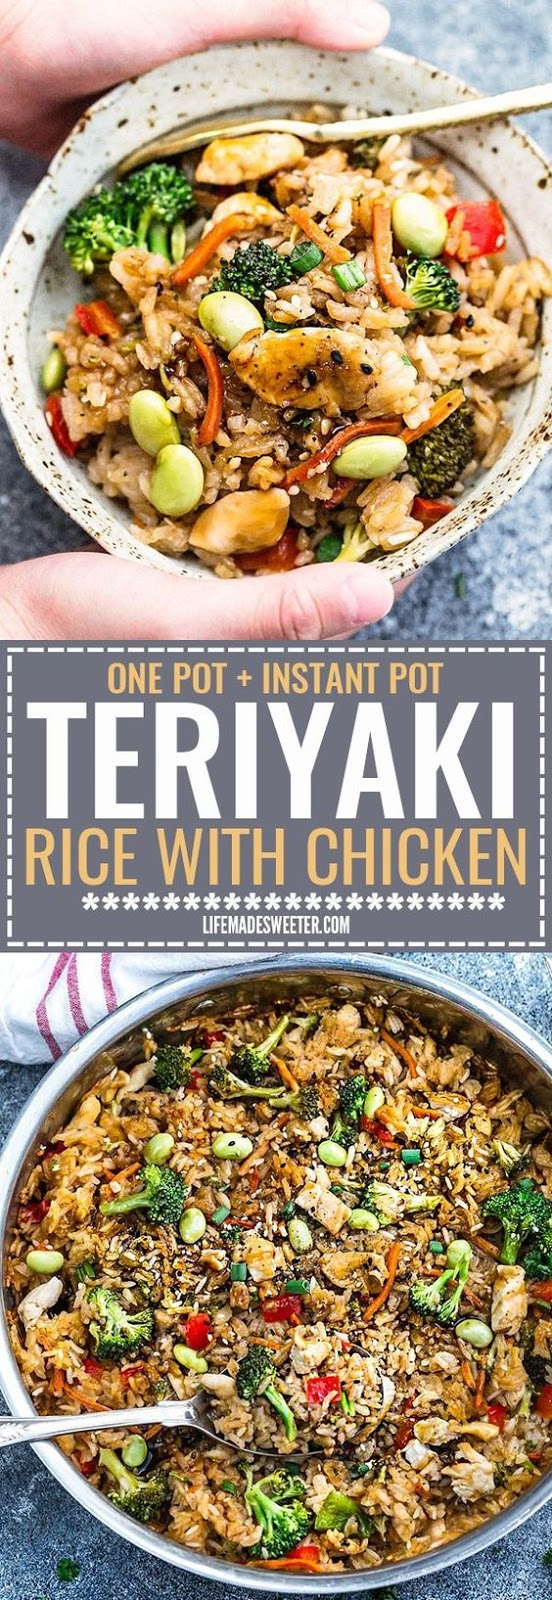 One Pot Teriyaki Rice with Chicken & Vegetables (+Instant Pot)